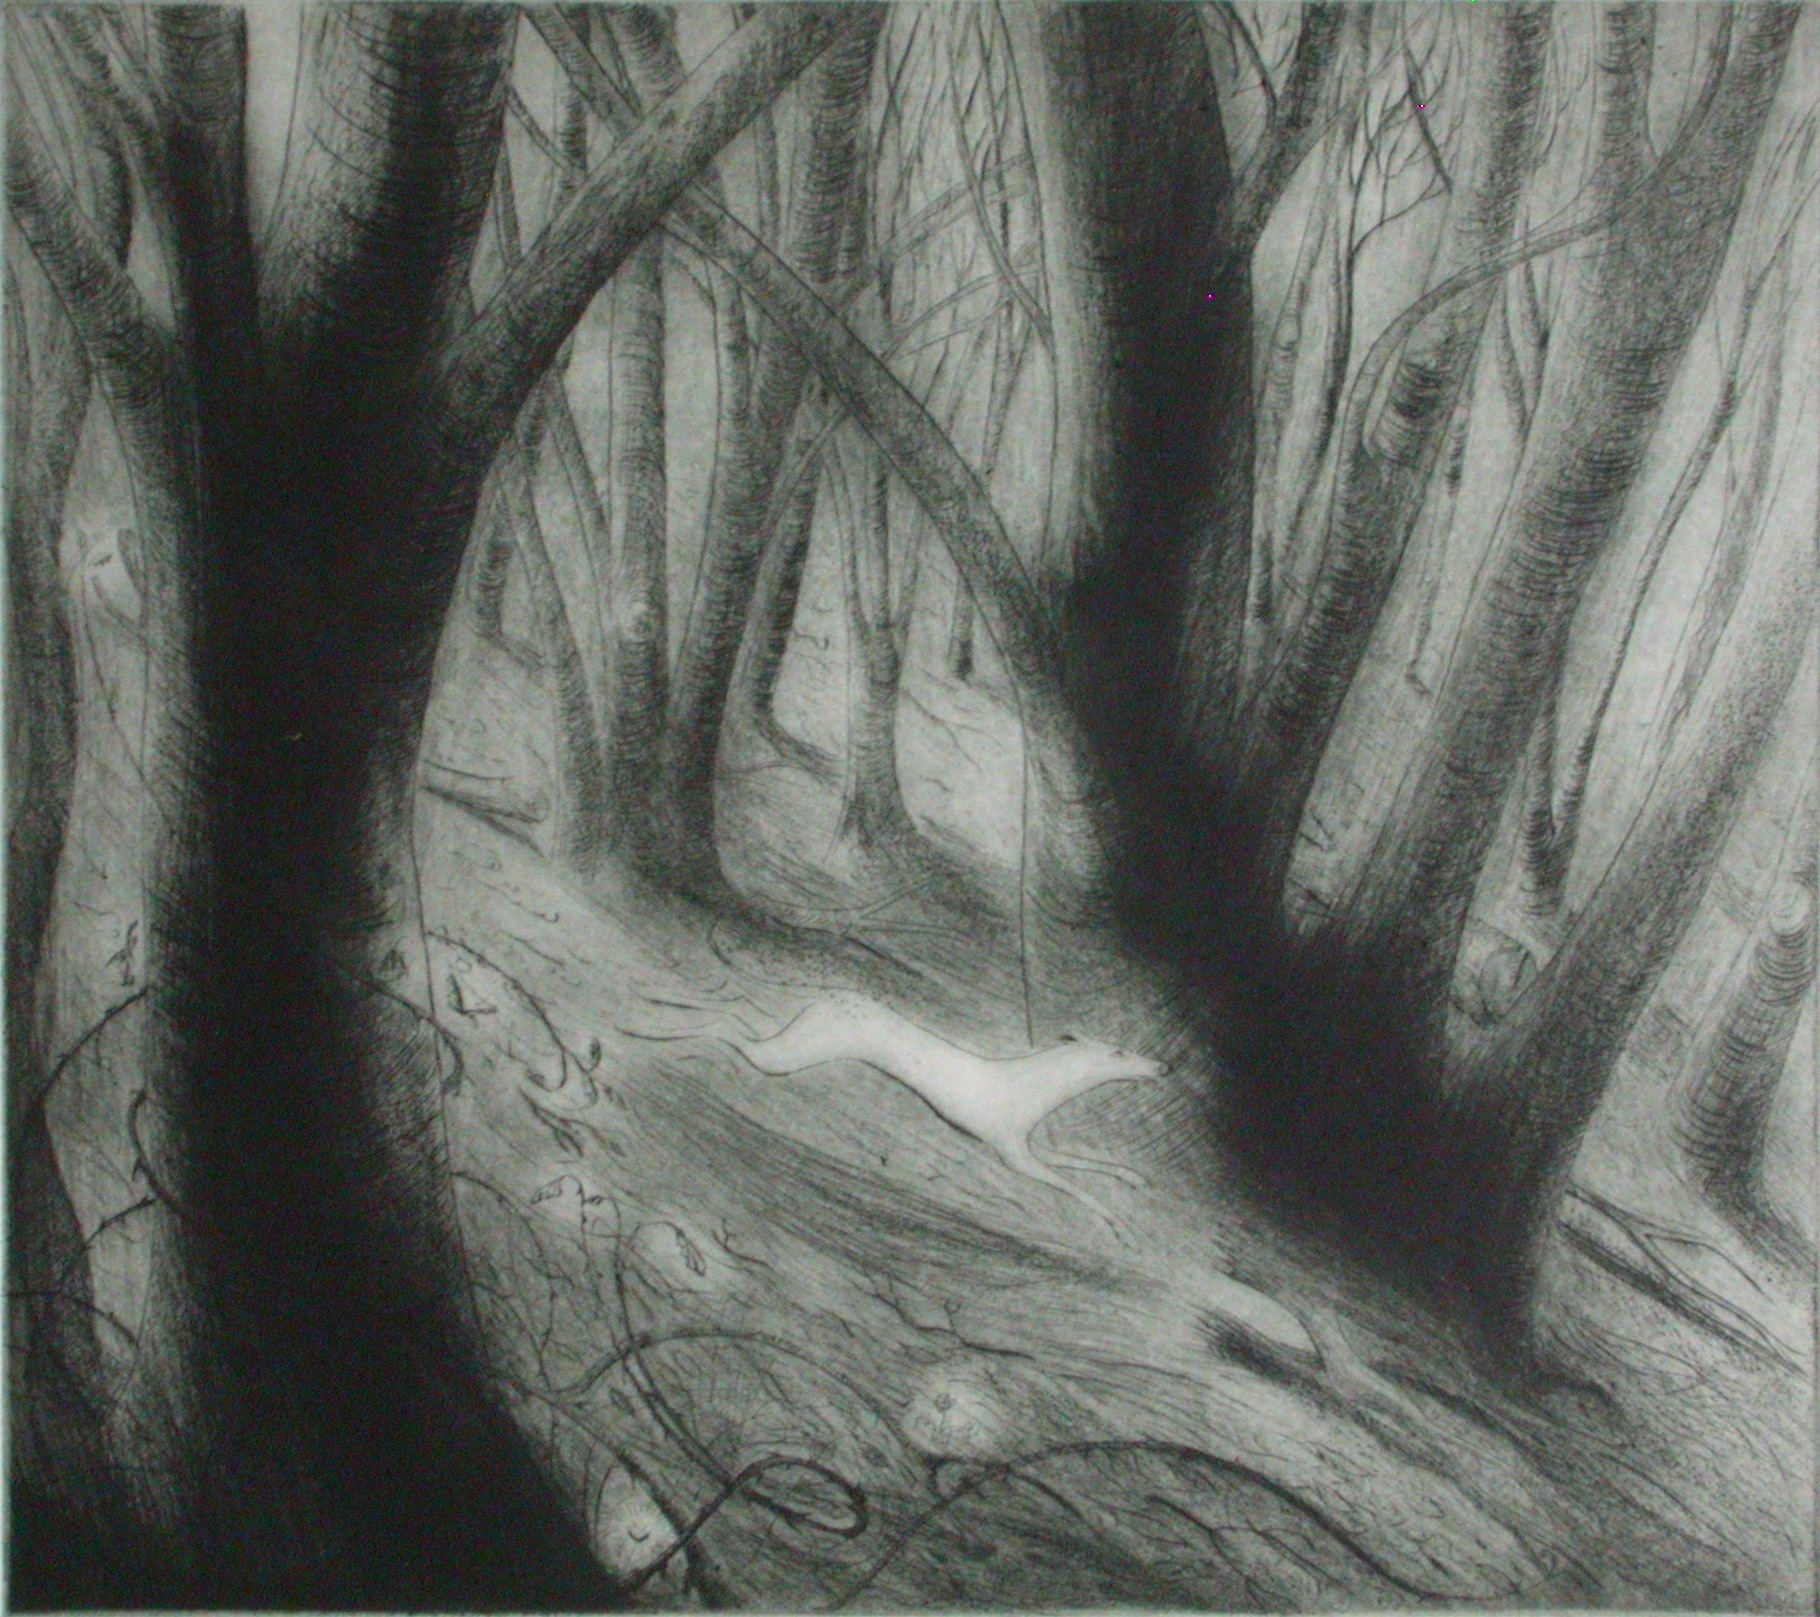 At The Turning of The Year  Drypoint  27 x 24 cm  £220 (Framed)  £175 (Unframed)